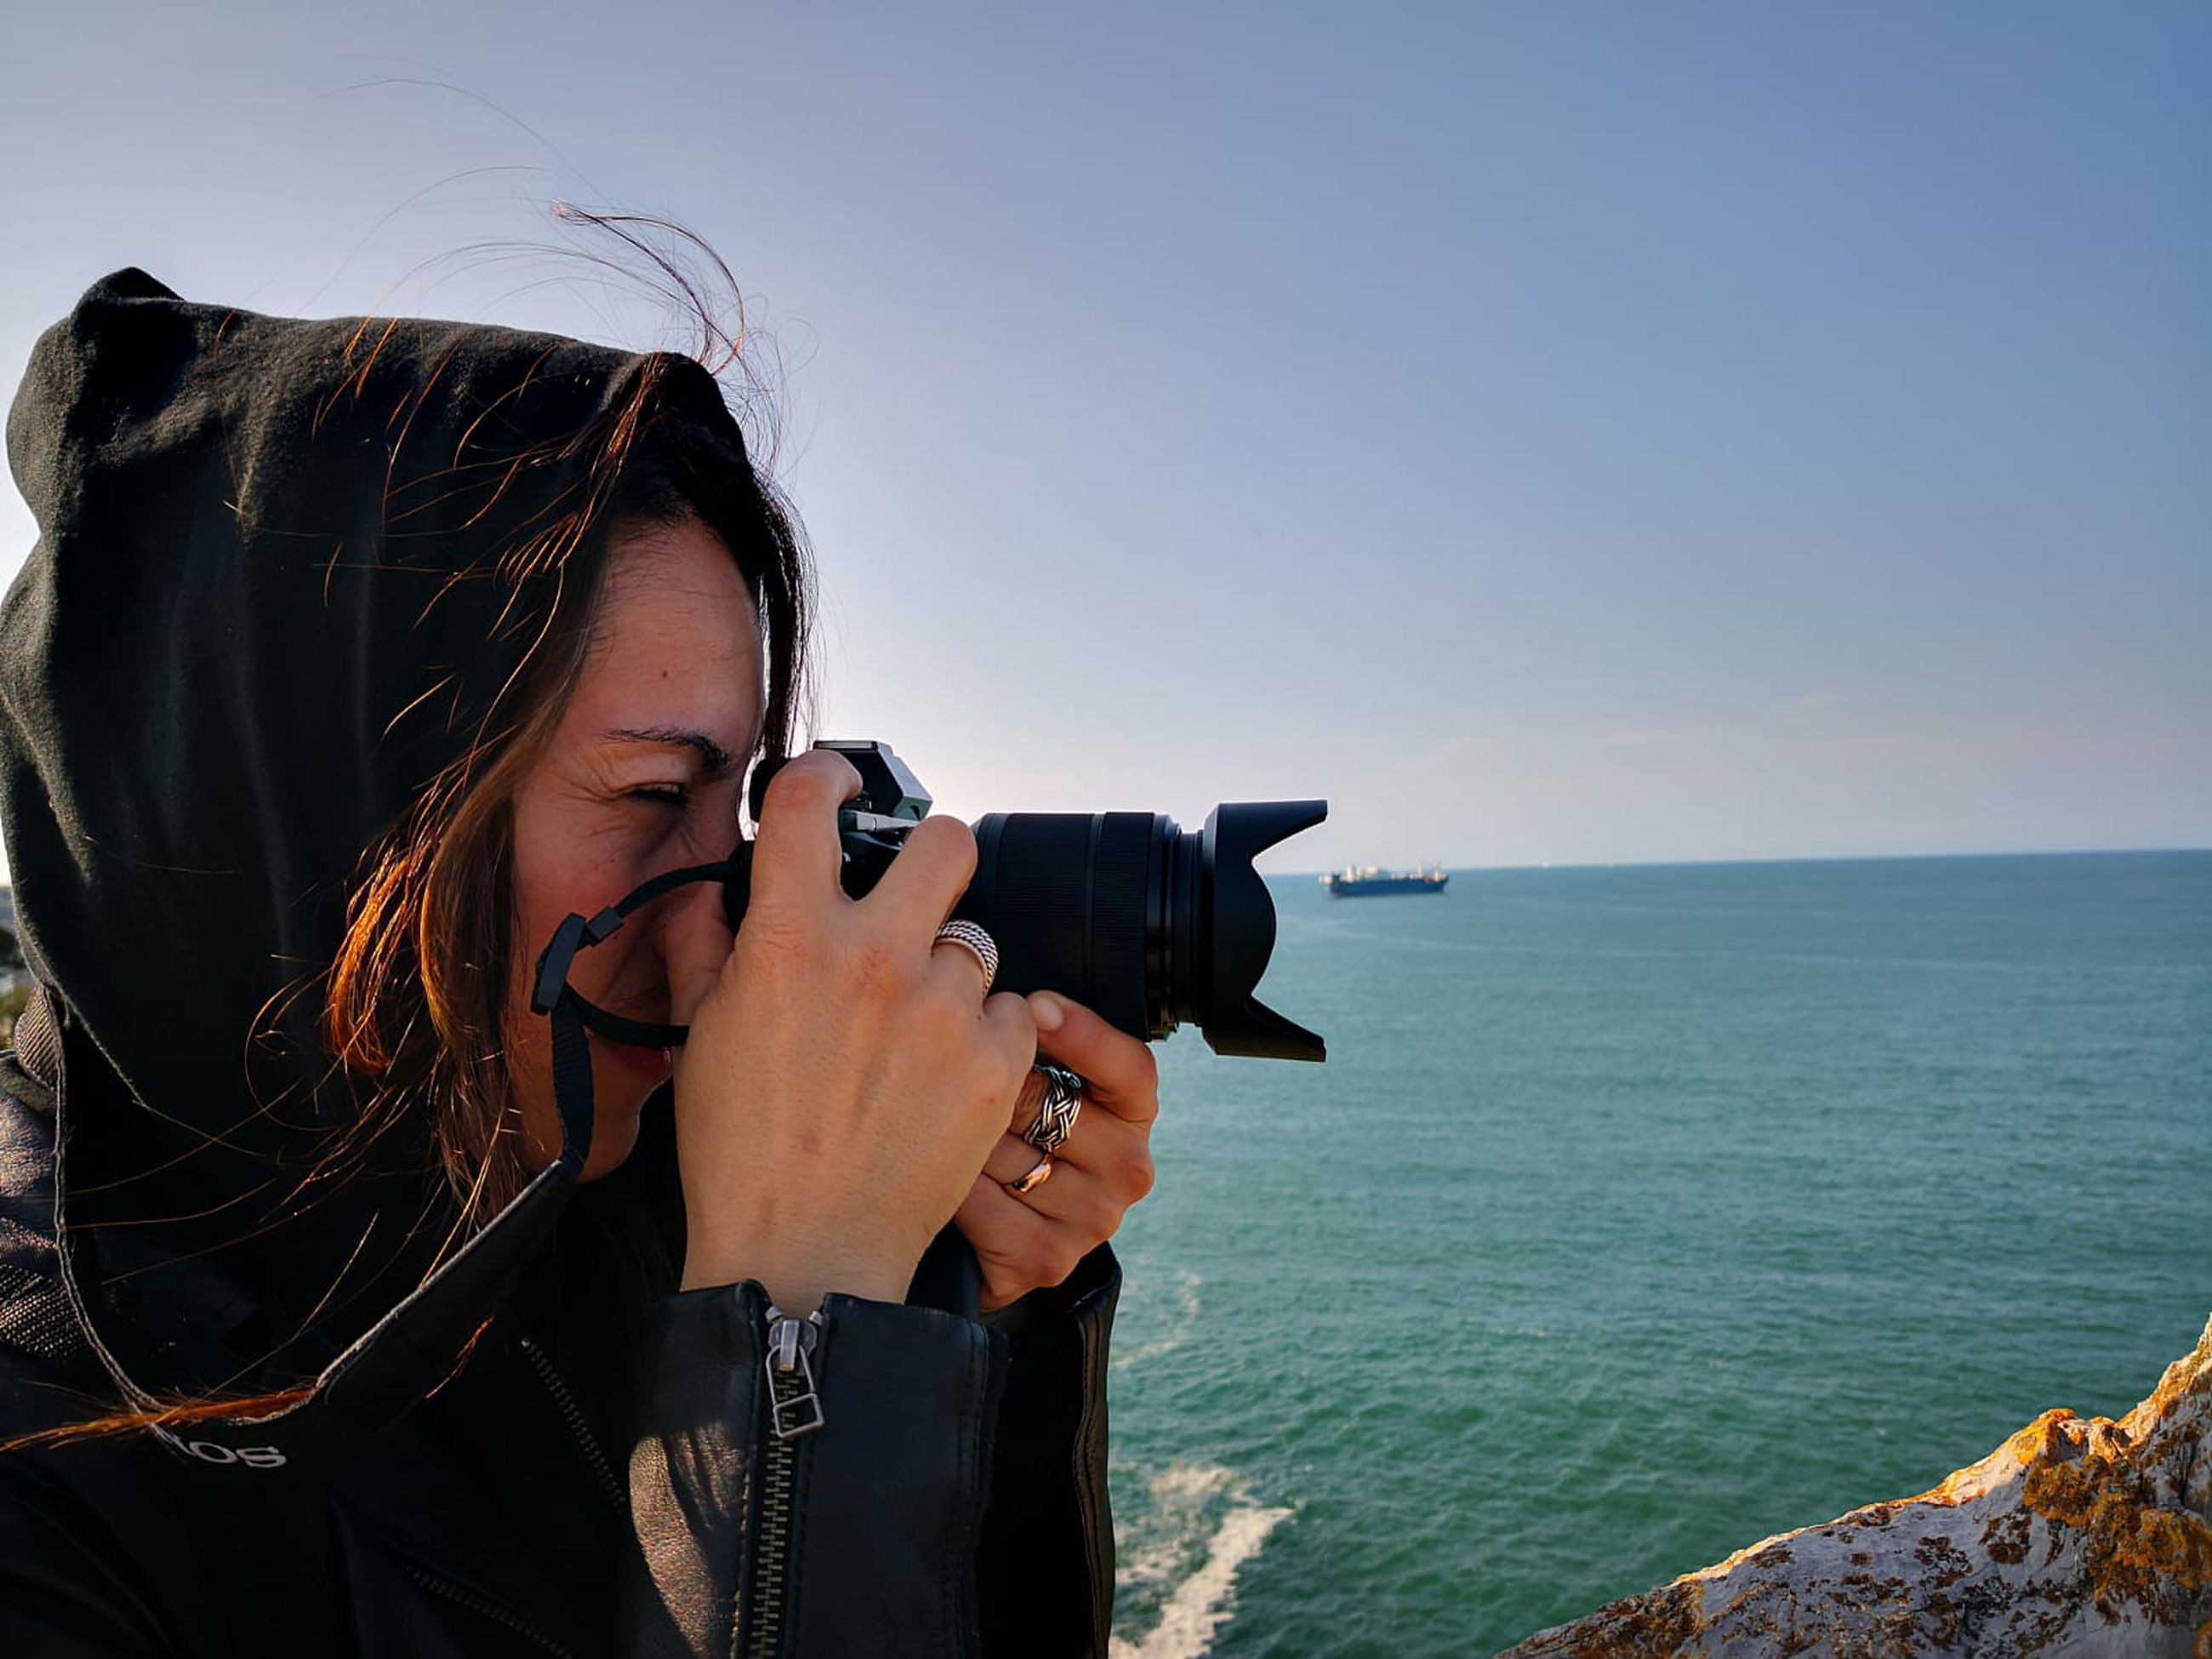 sea, sky, one person, leisure activity, technology, young adult, water, horizon over water, horizon, real people, lifestyles, photography themes, activity, holding, young women, camera - photographic equipment, photographing, standing, hair, hairstyle, wireless technology, outdoors, digital camera